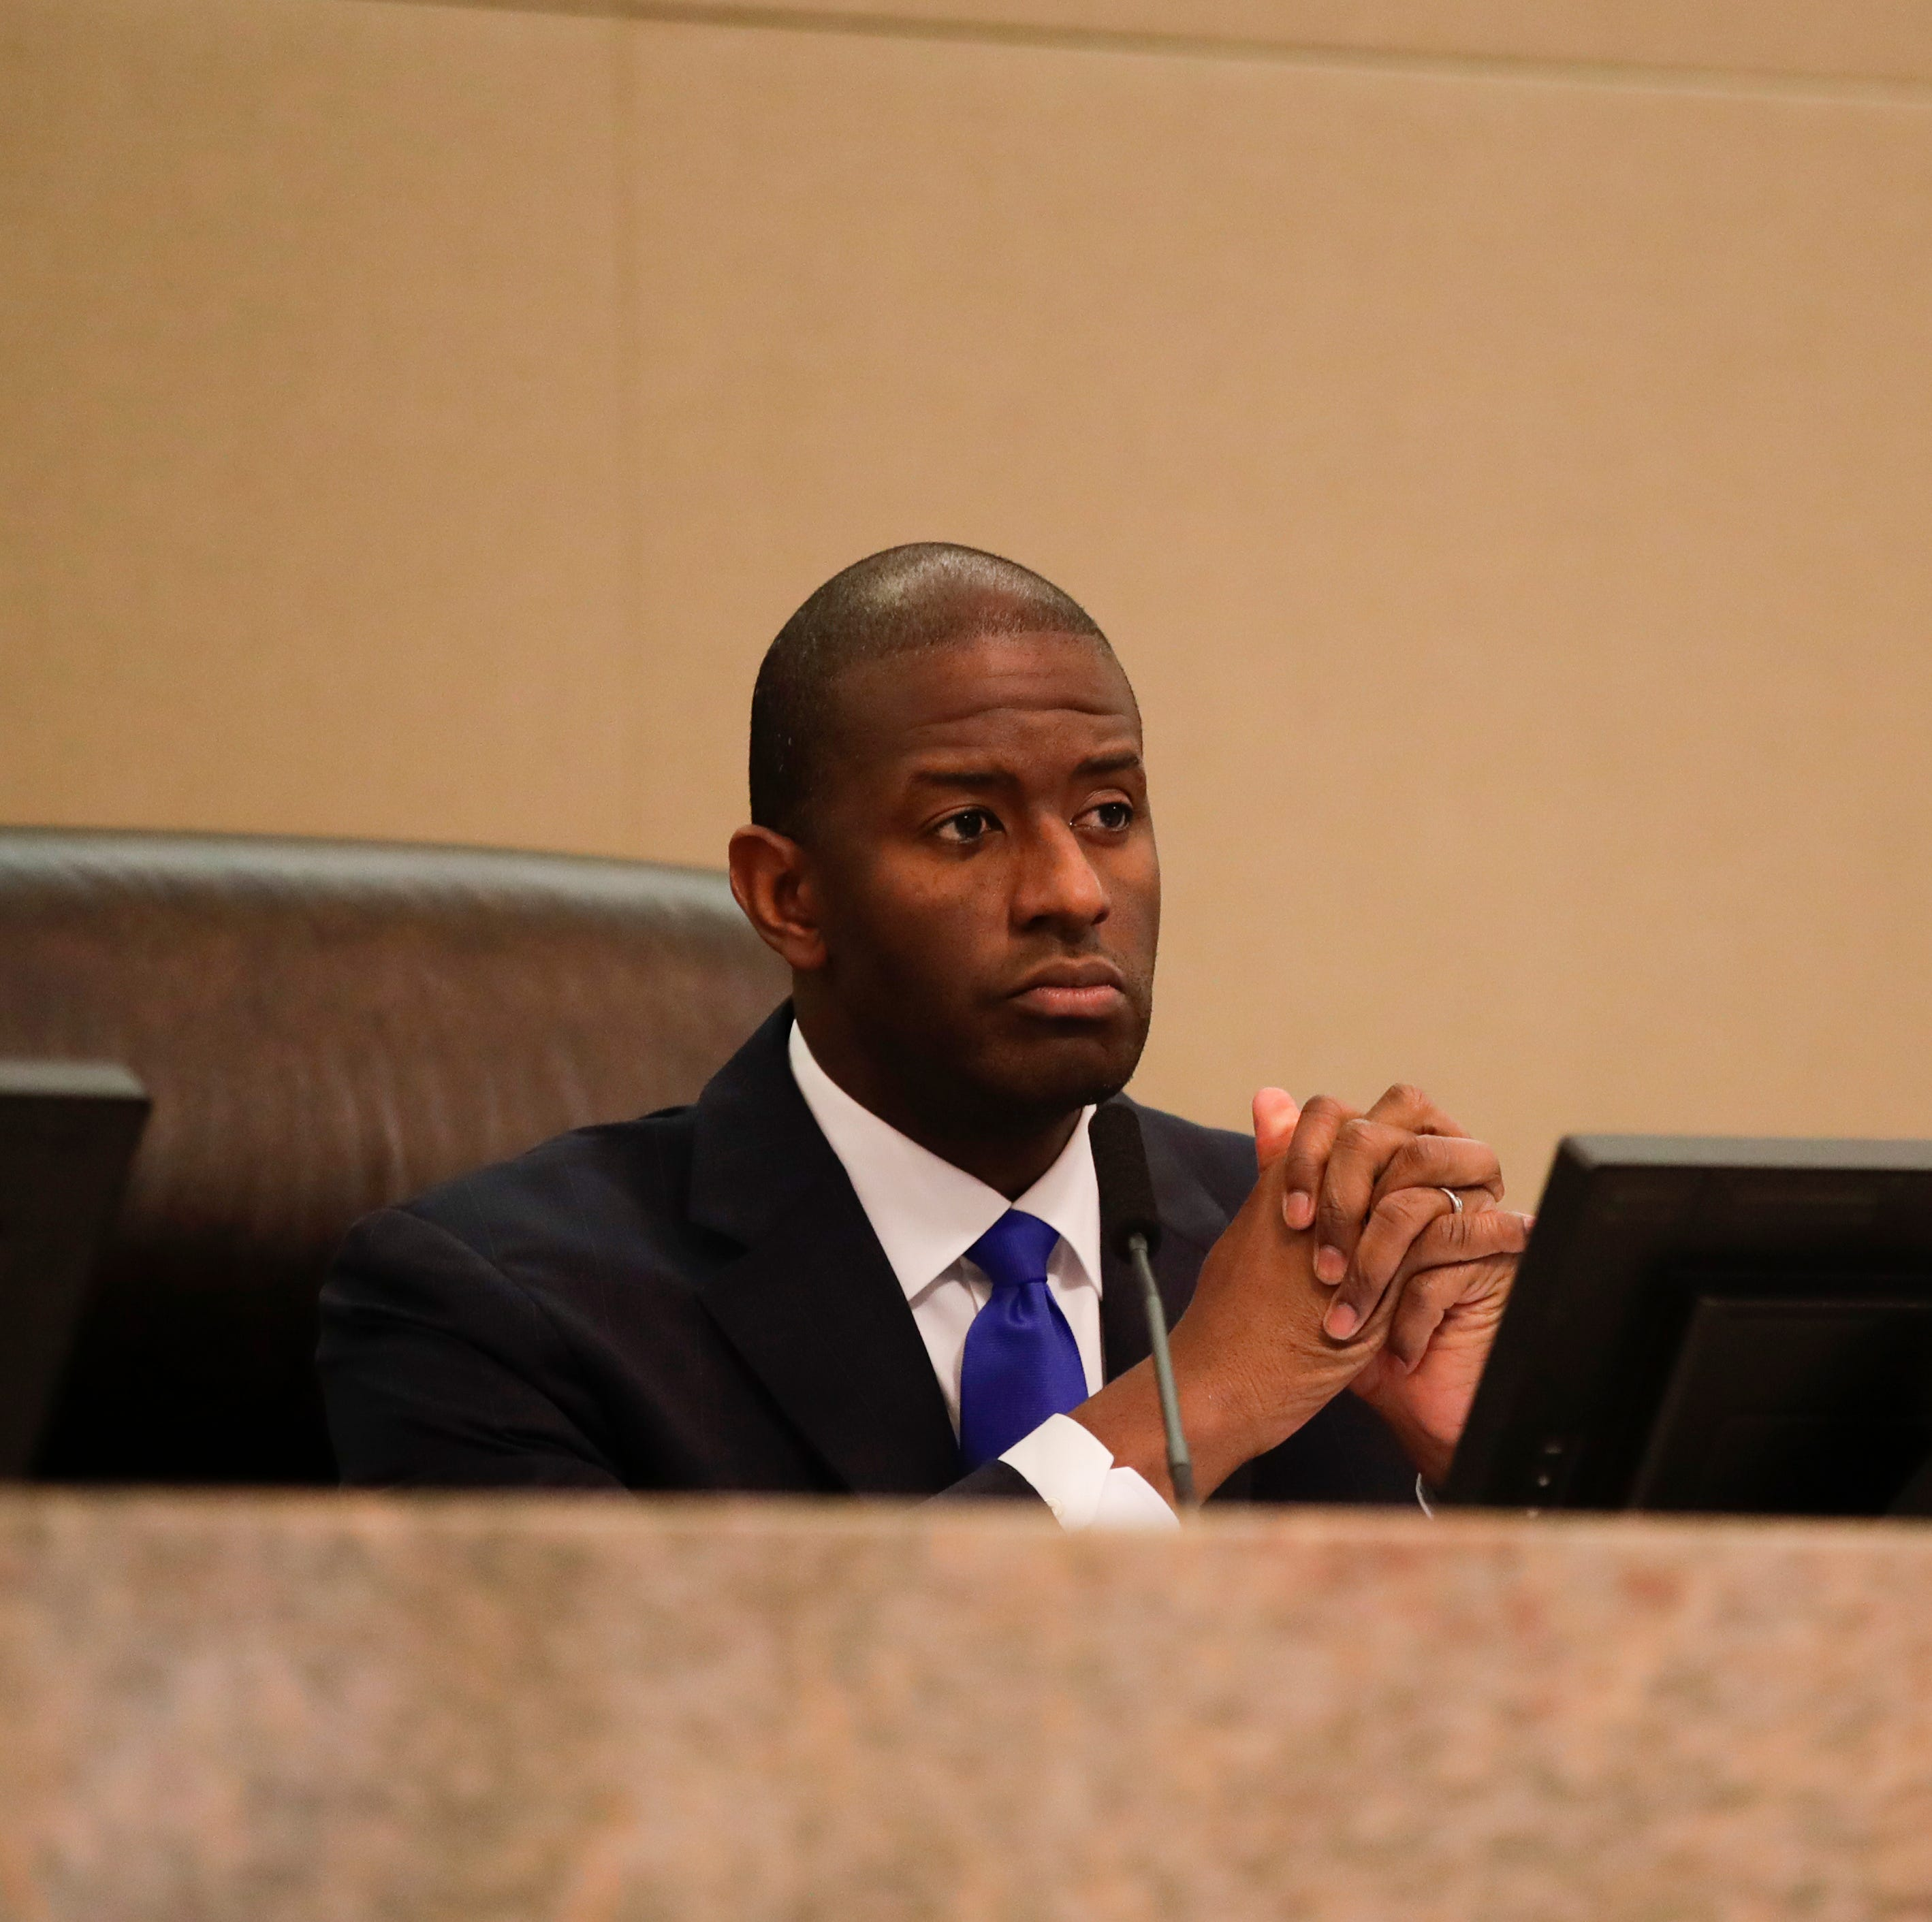 As Florida machine recount upholds Ron DeSantis win, Andrew Gillum keeping options open